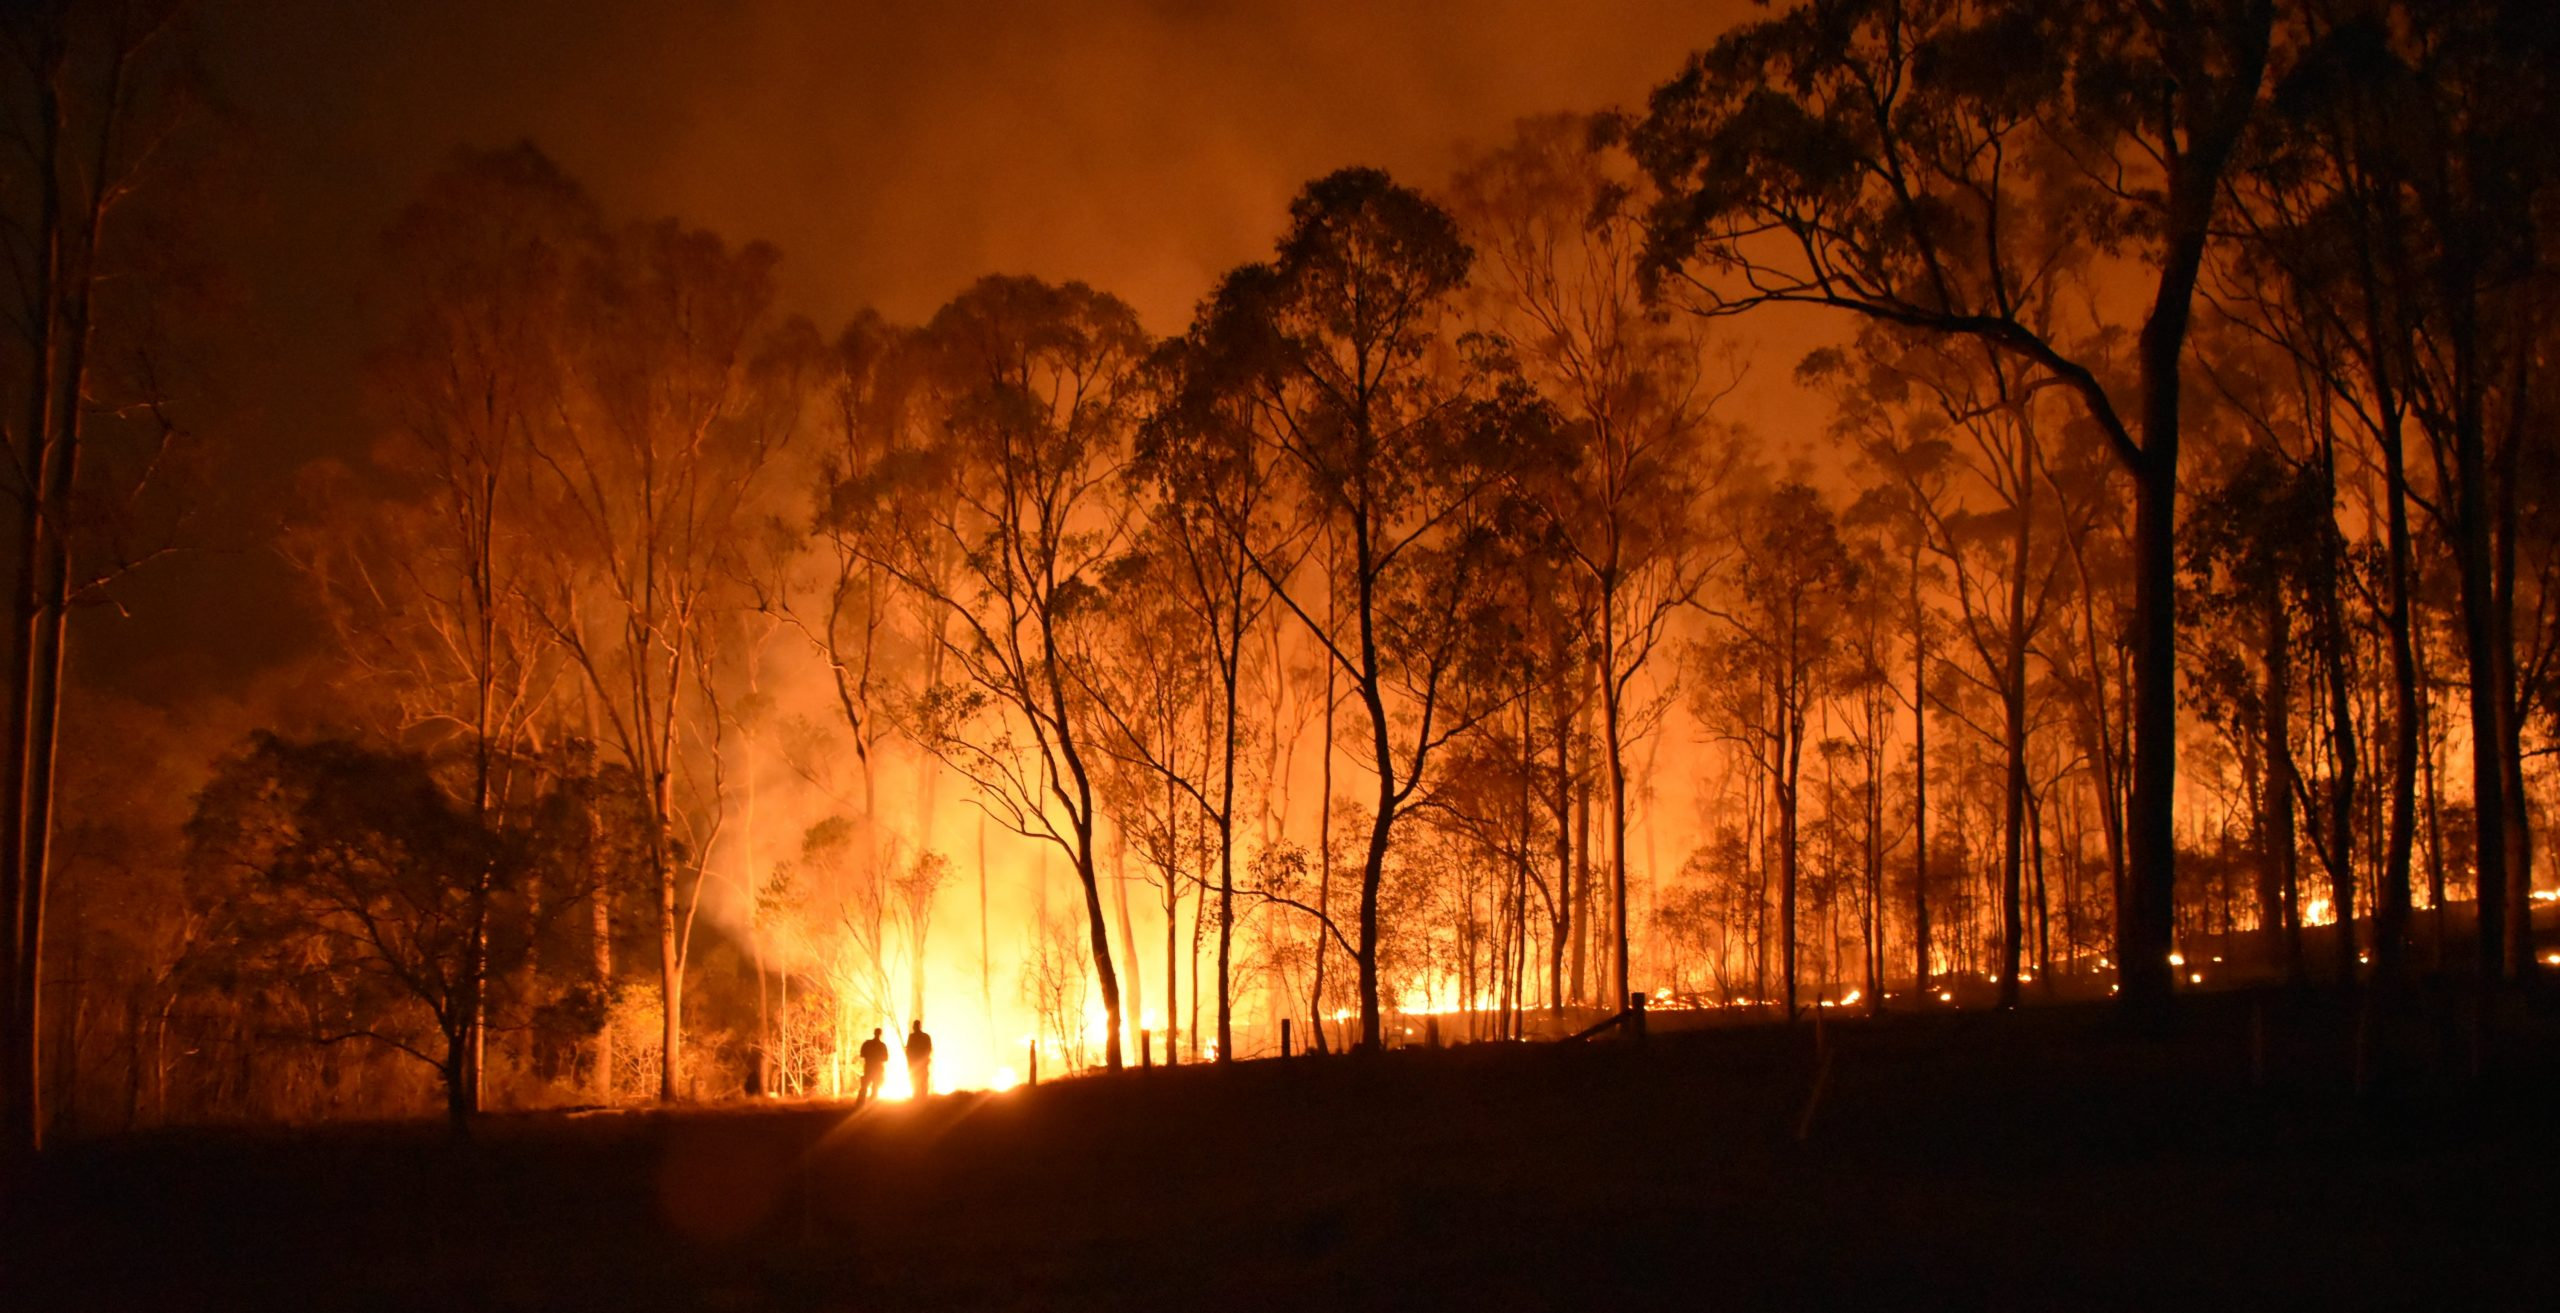 Australian bush fire season linking with climate change